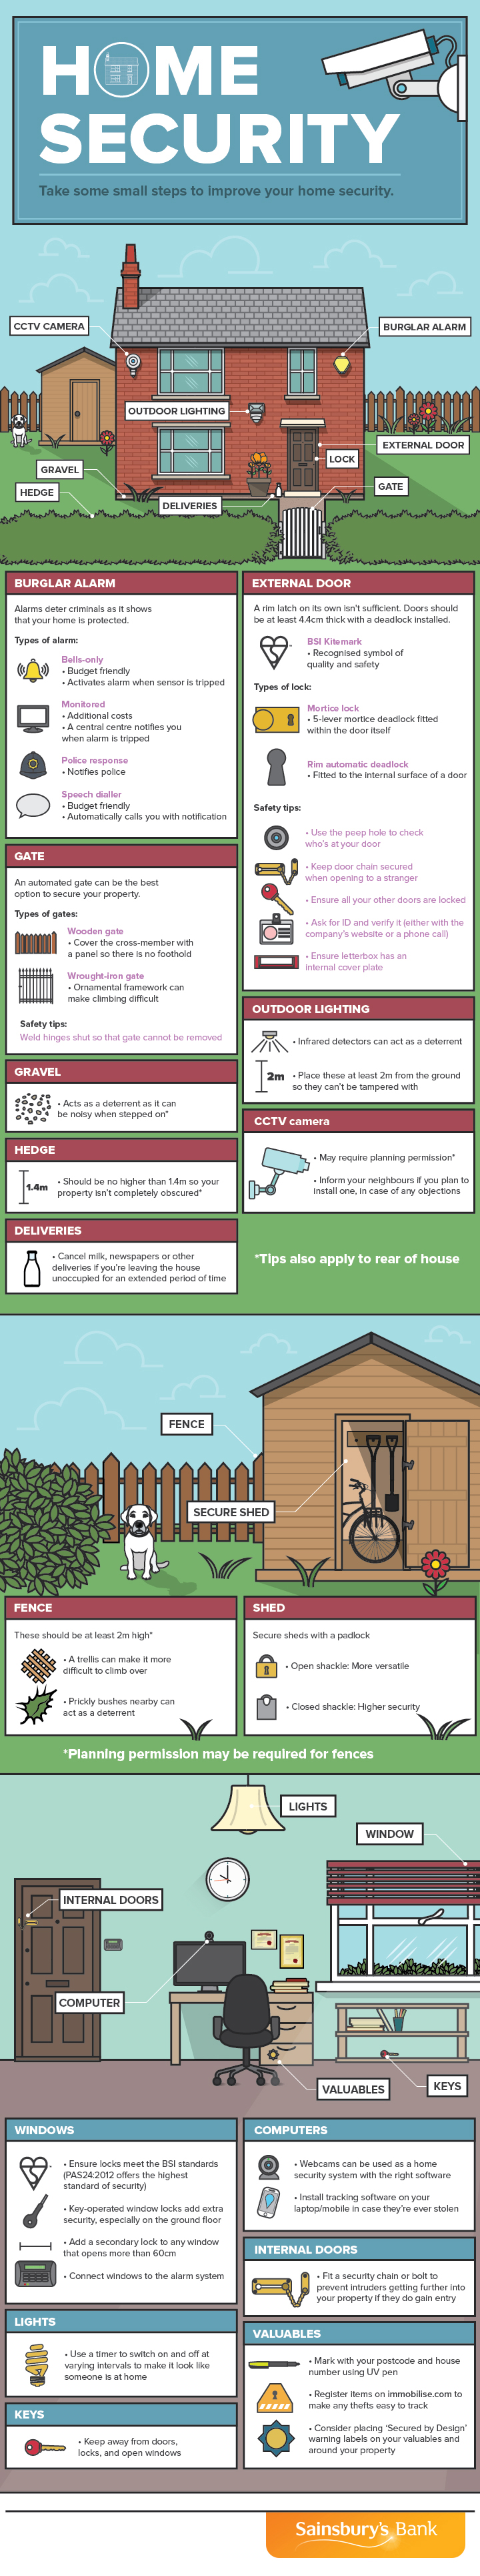 Home security visual guide